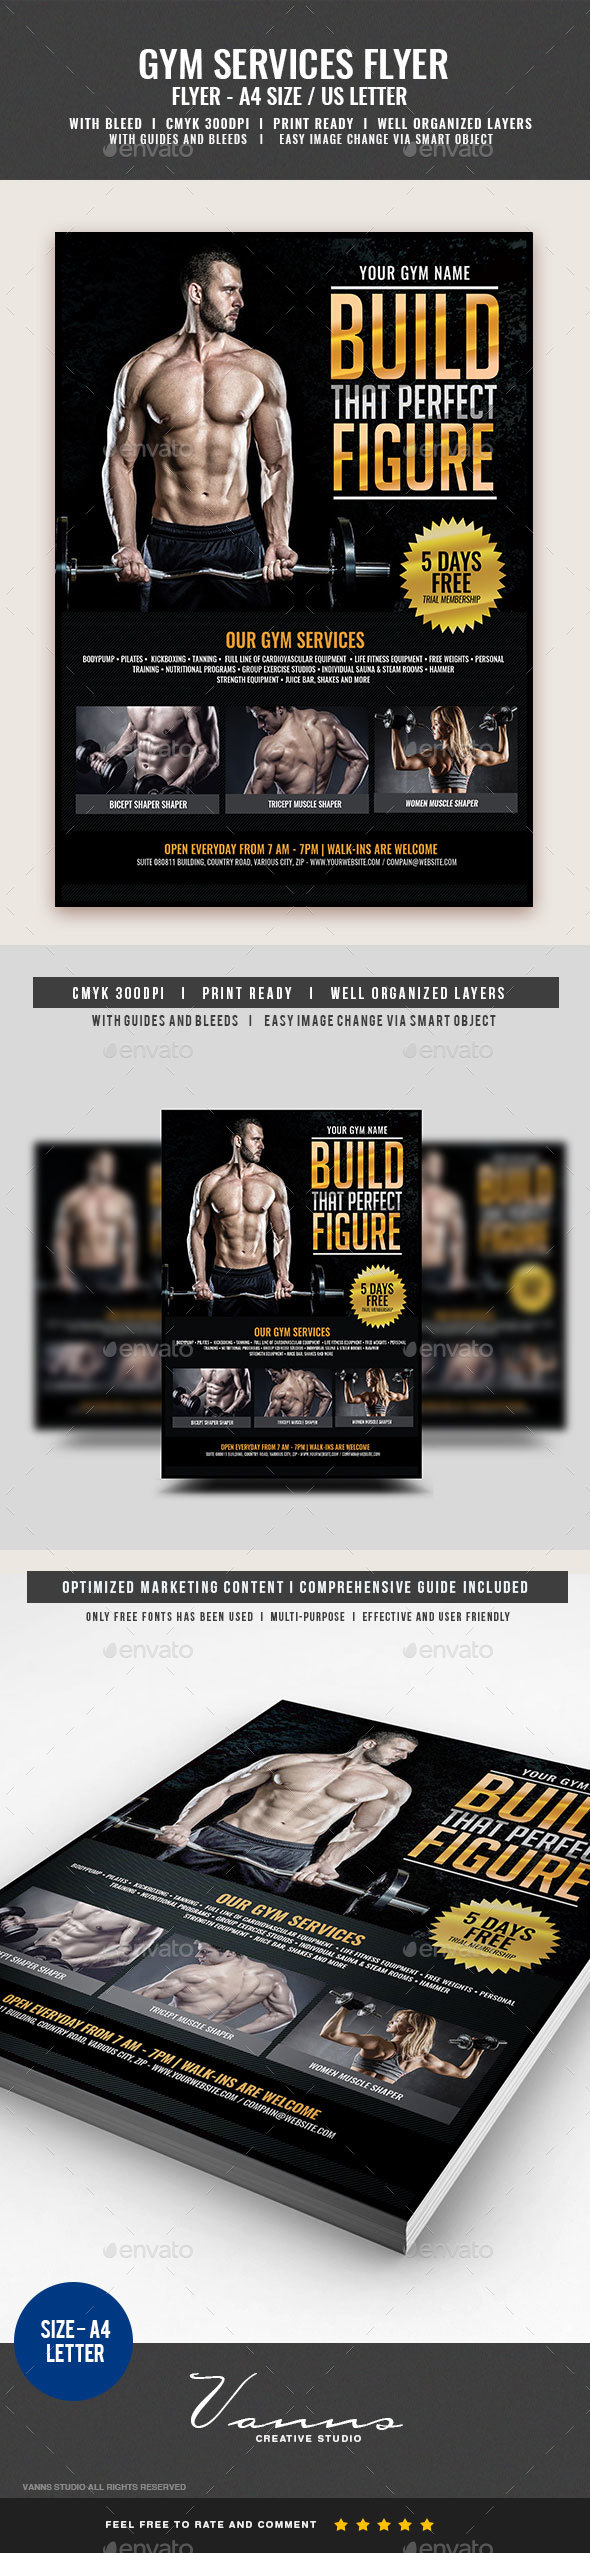 Gym Body Building Fitness Services Flyer